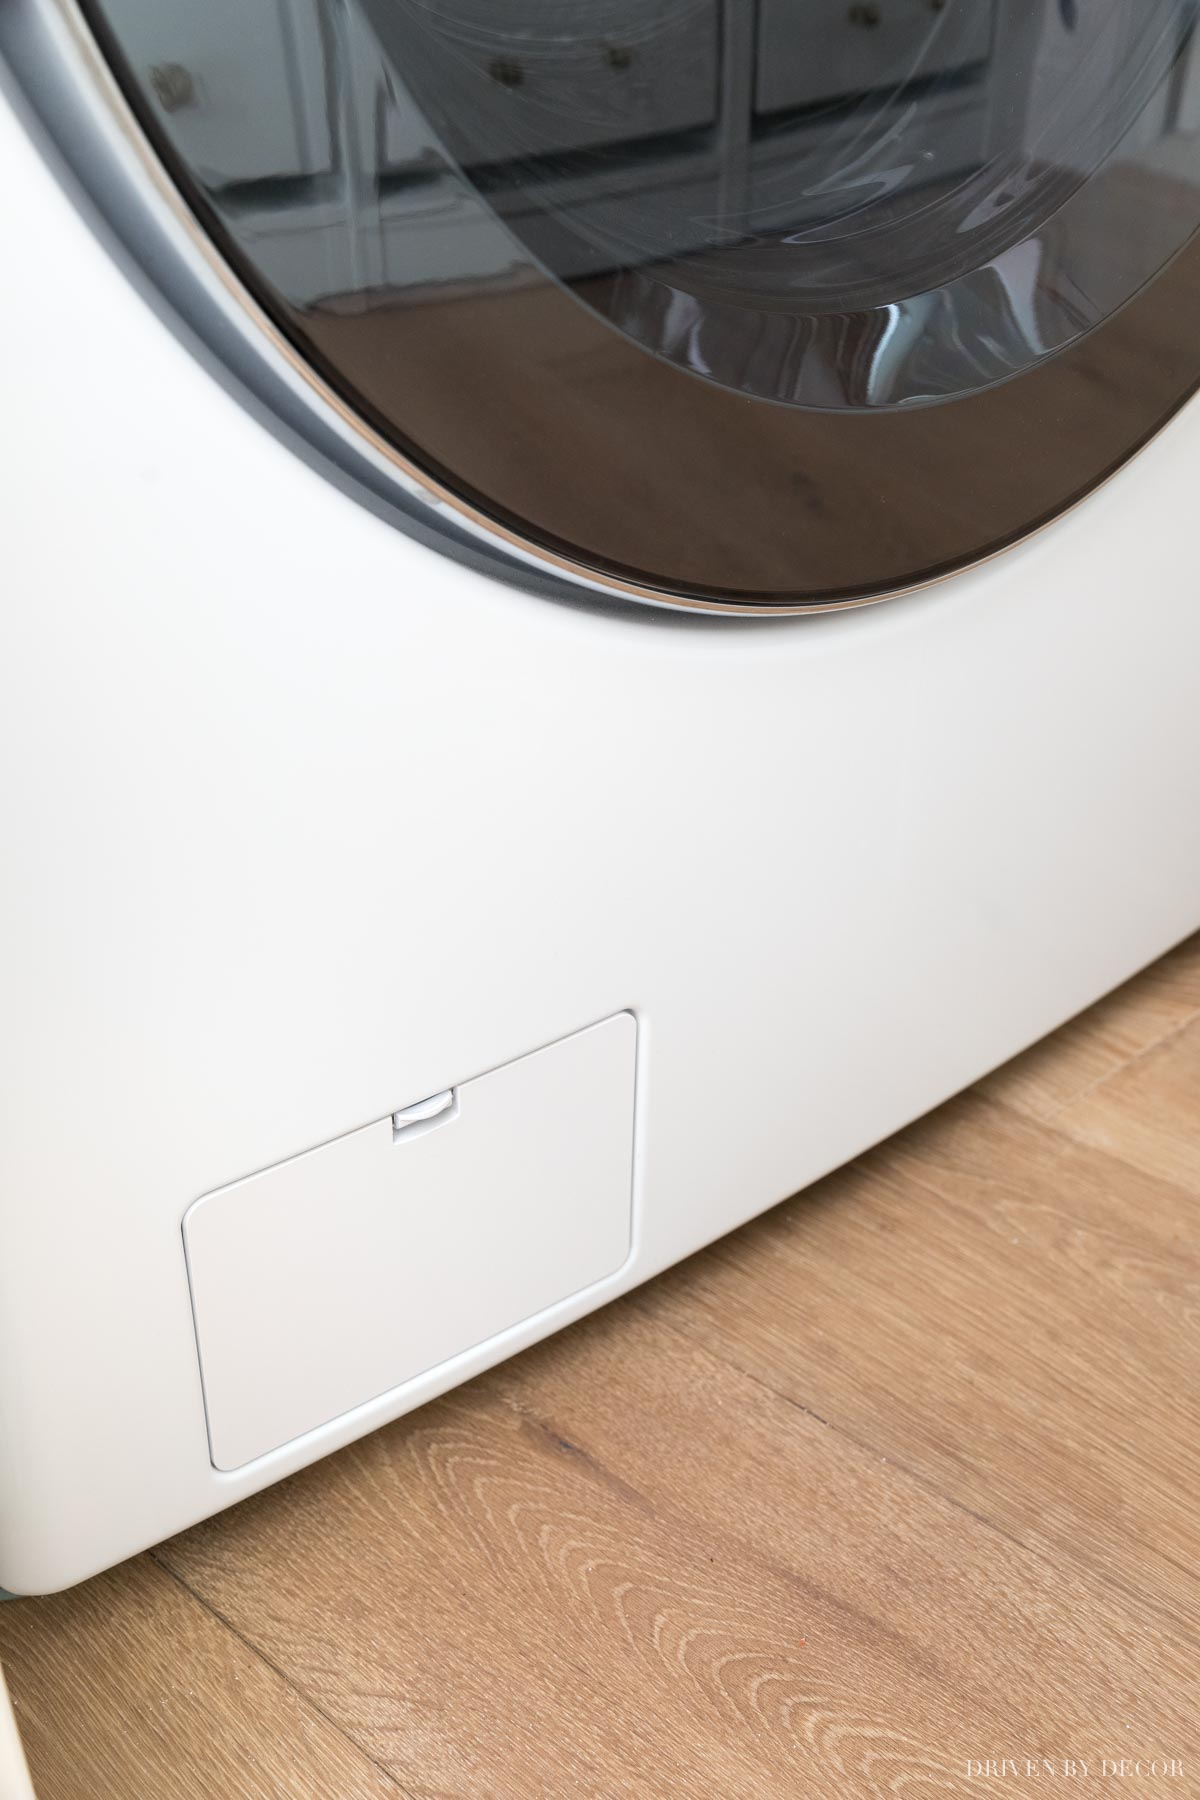 Access door on washing machine that has filter you need to clean!